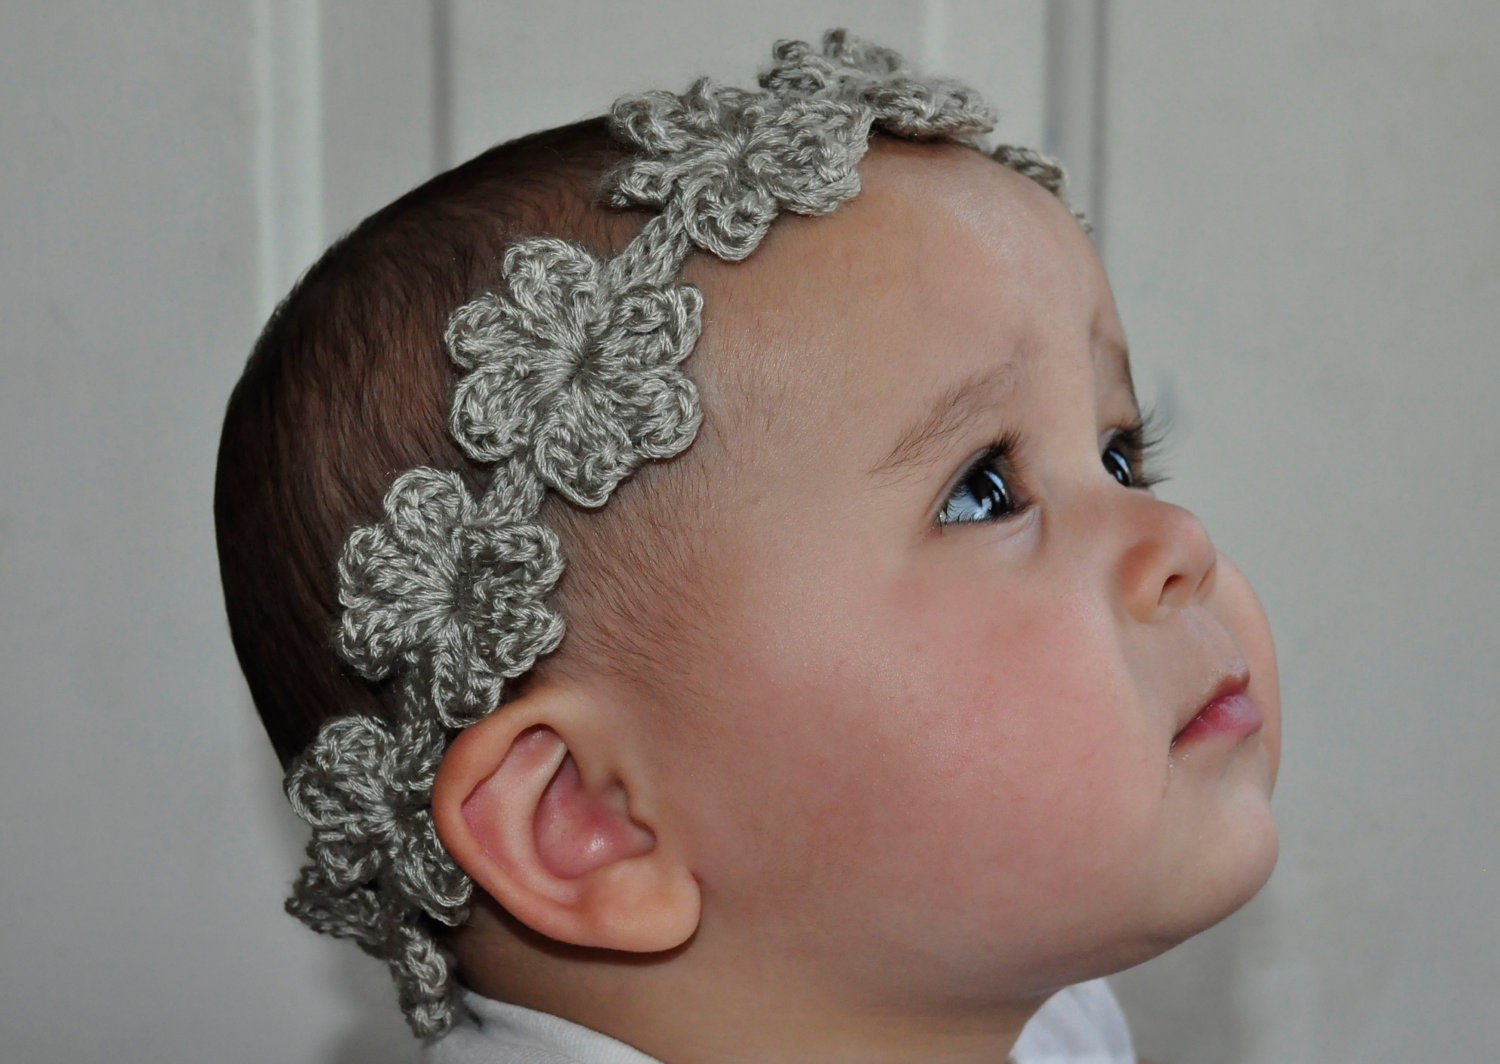 Crocheting A Headband : Crochet Pattern PDF Headband / Bracelet Flower by 5PacksCrochet